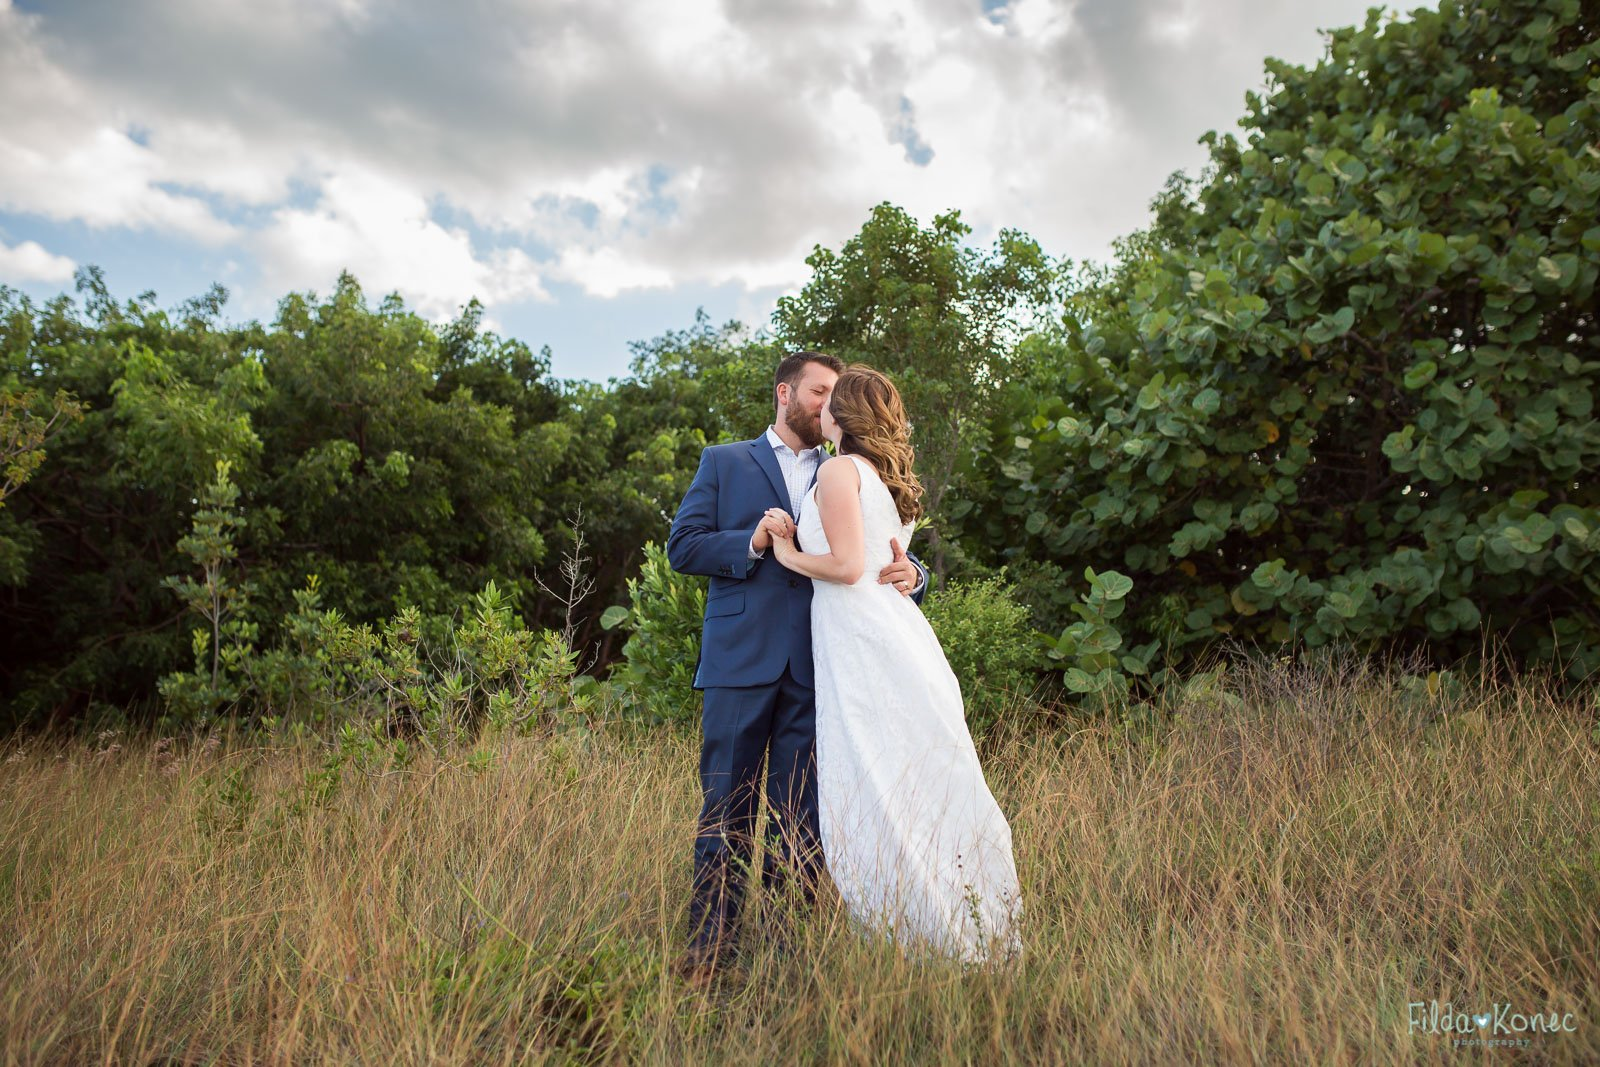 wedding photo at fort zachary taylor park